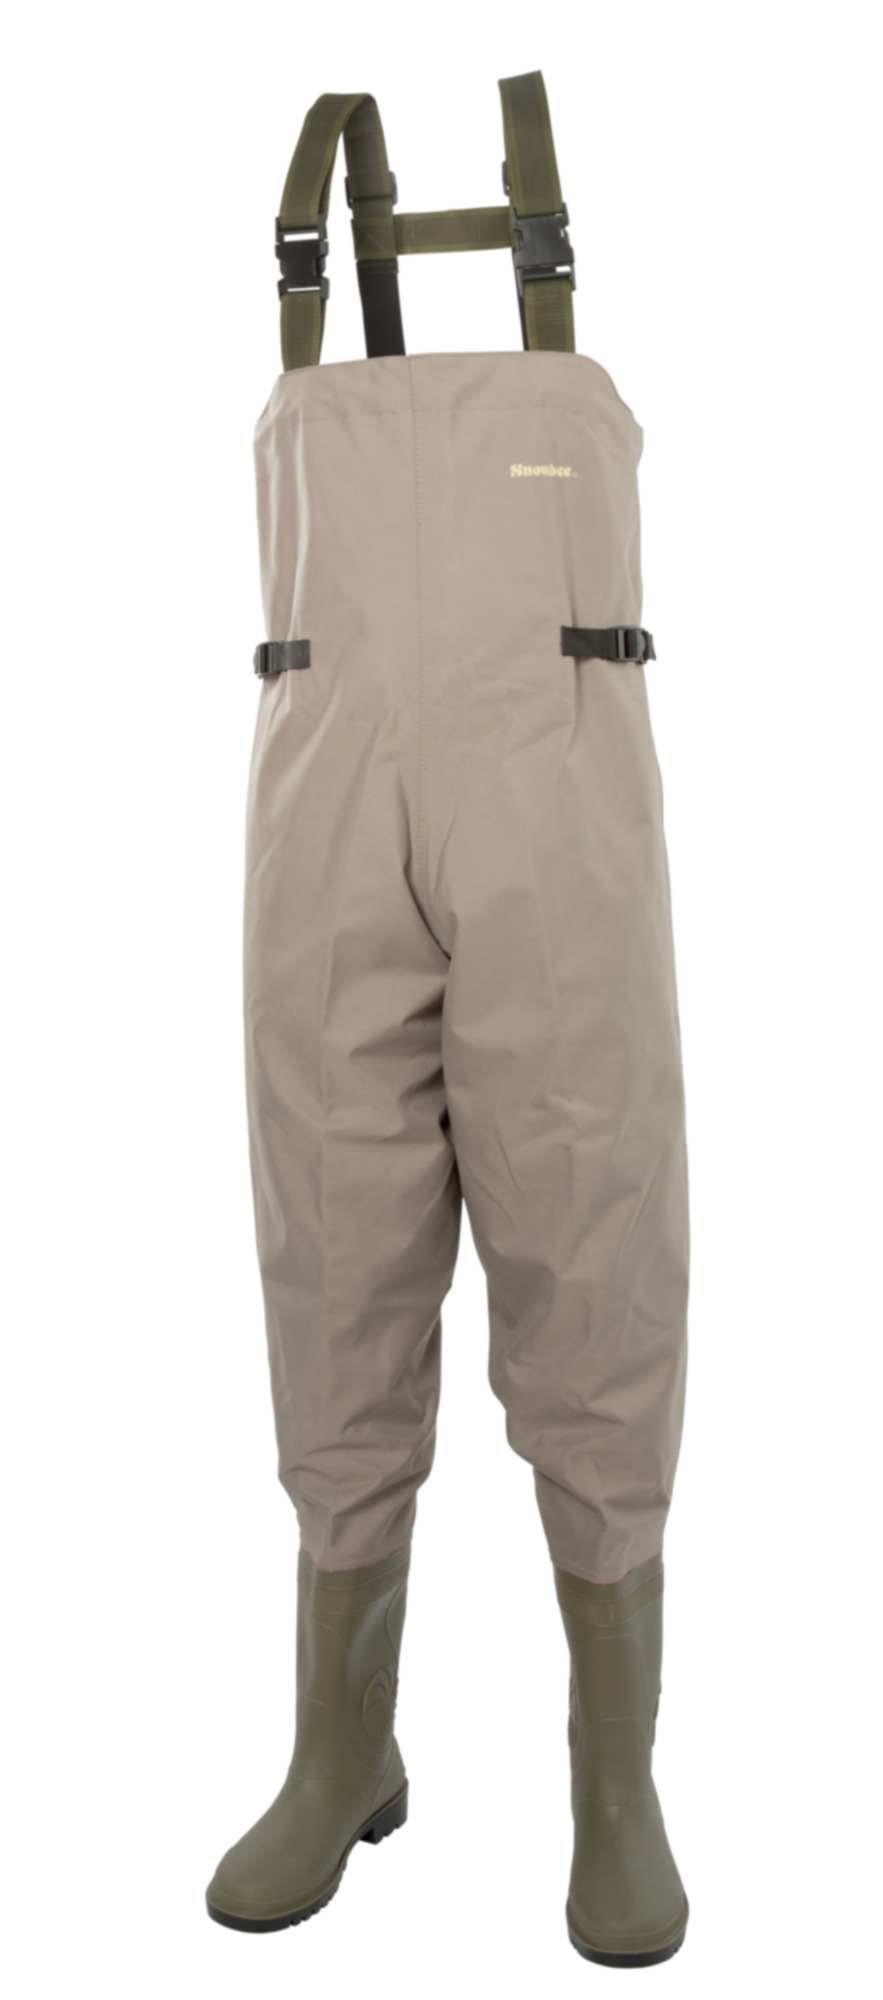 Snowbee 150D Rip-Stop Nylon Chest Waders